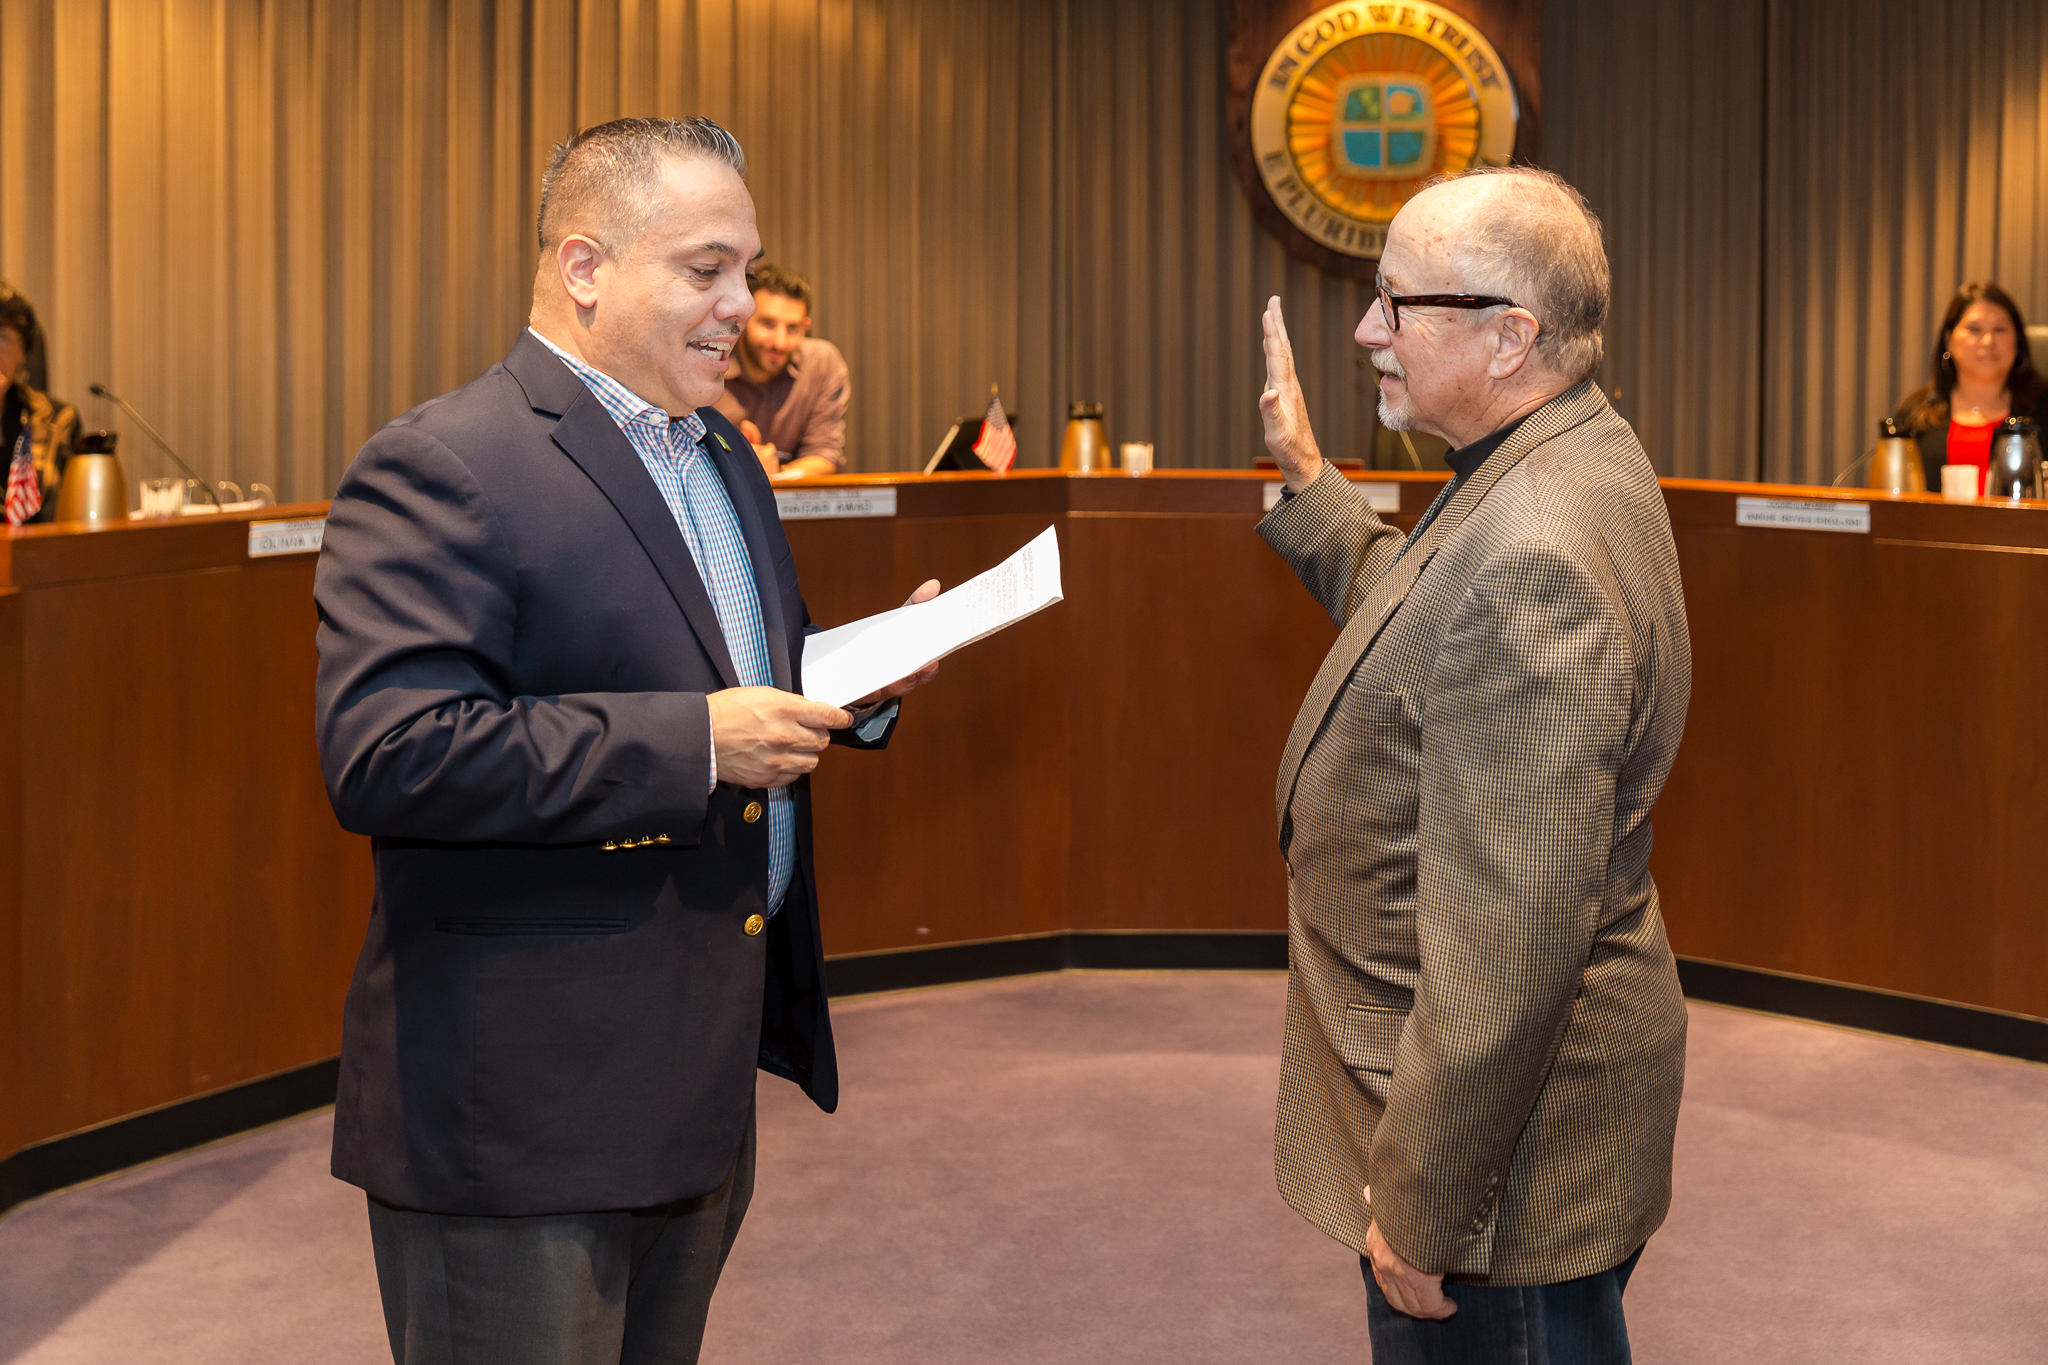 Mayor Alex Vargas and Donald Harris